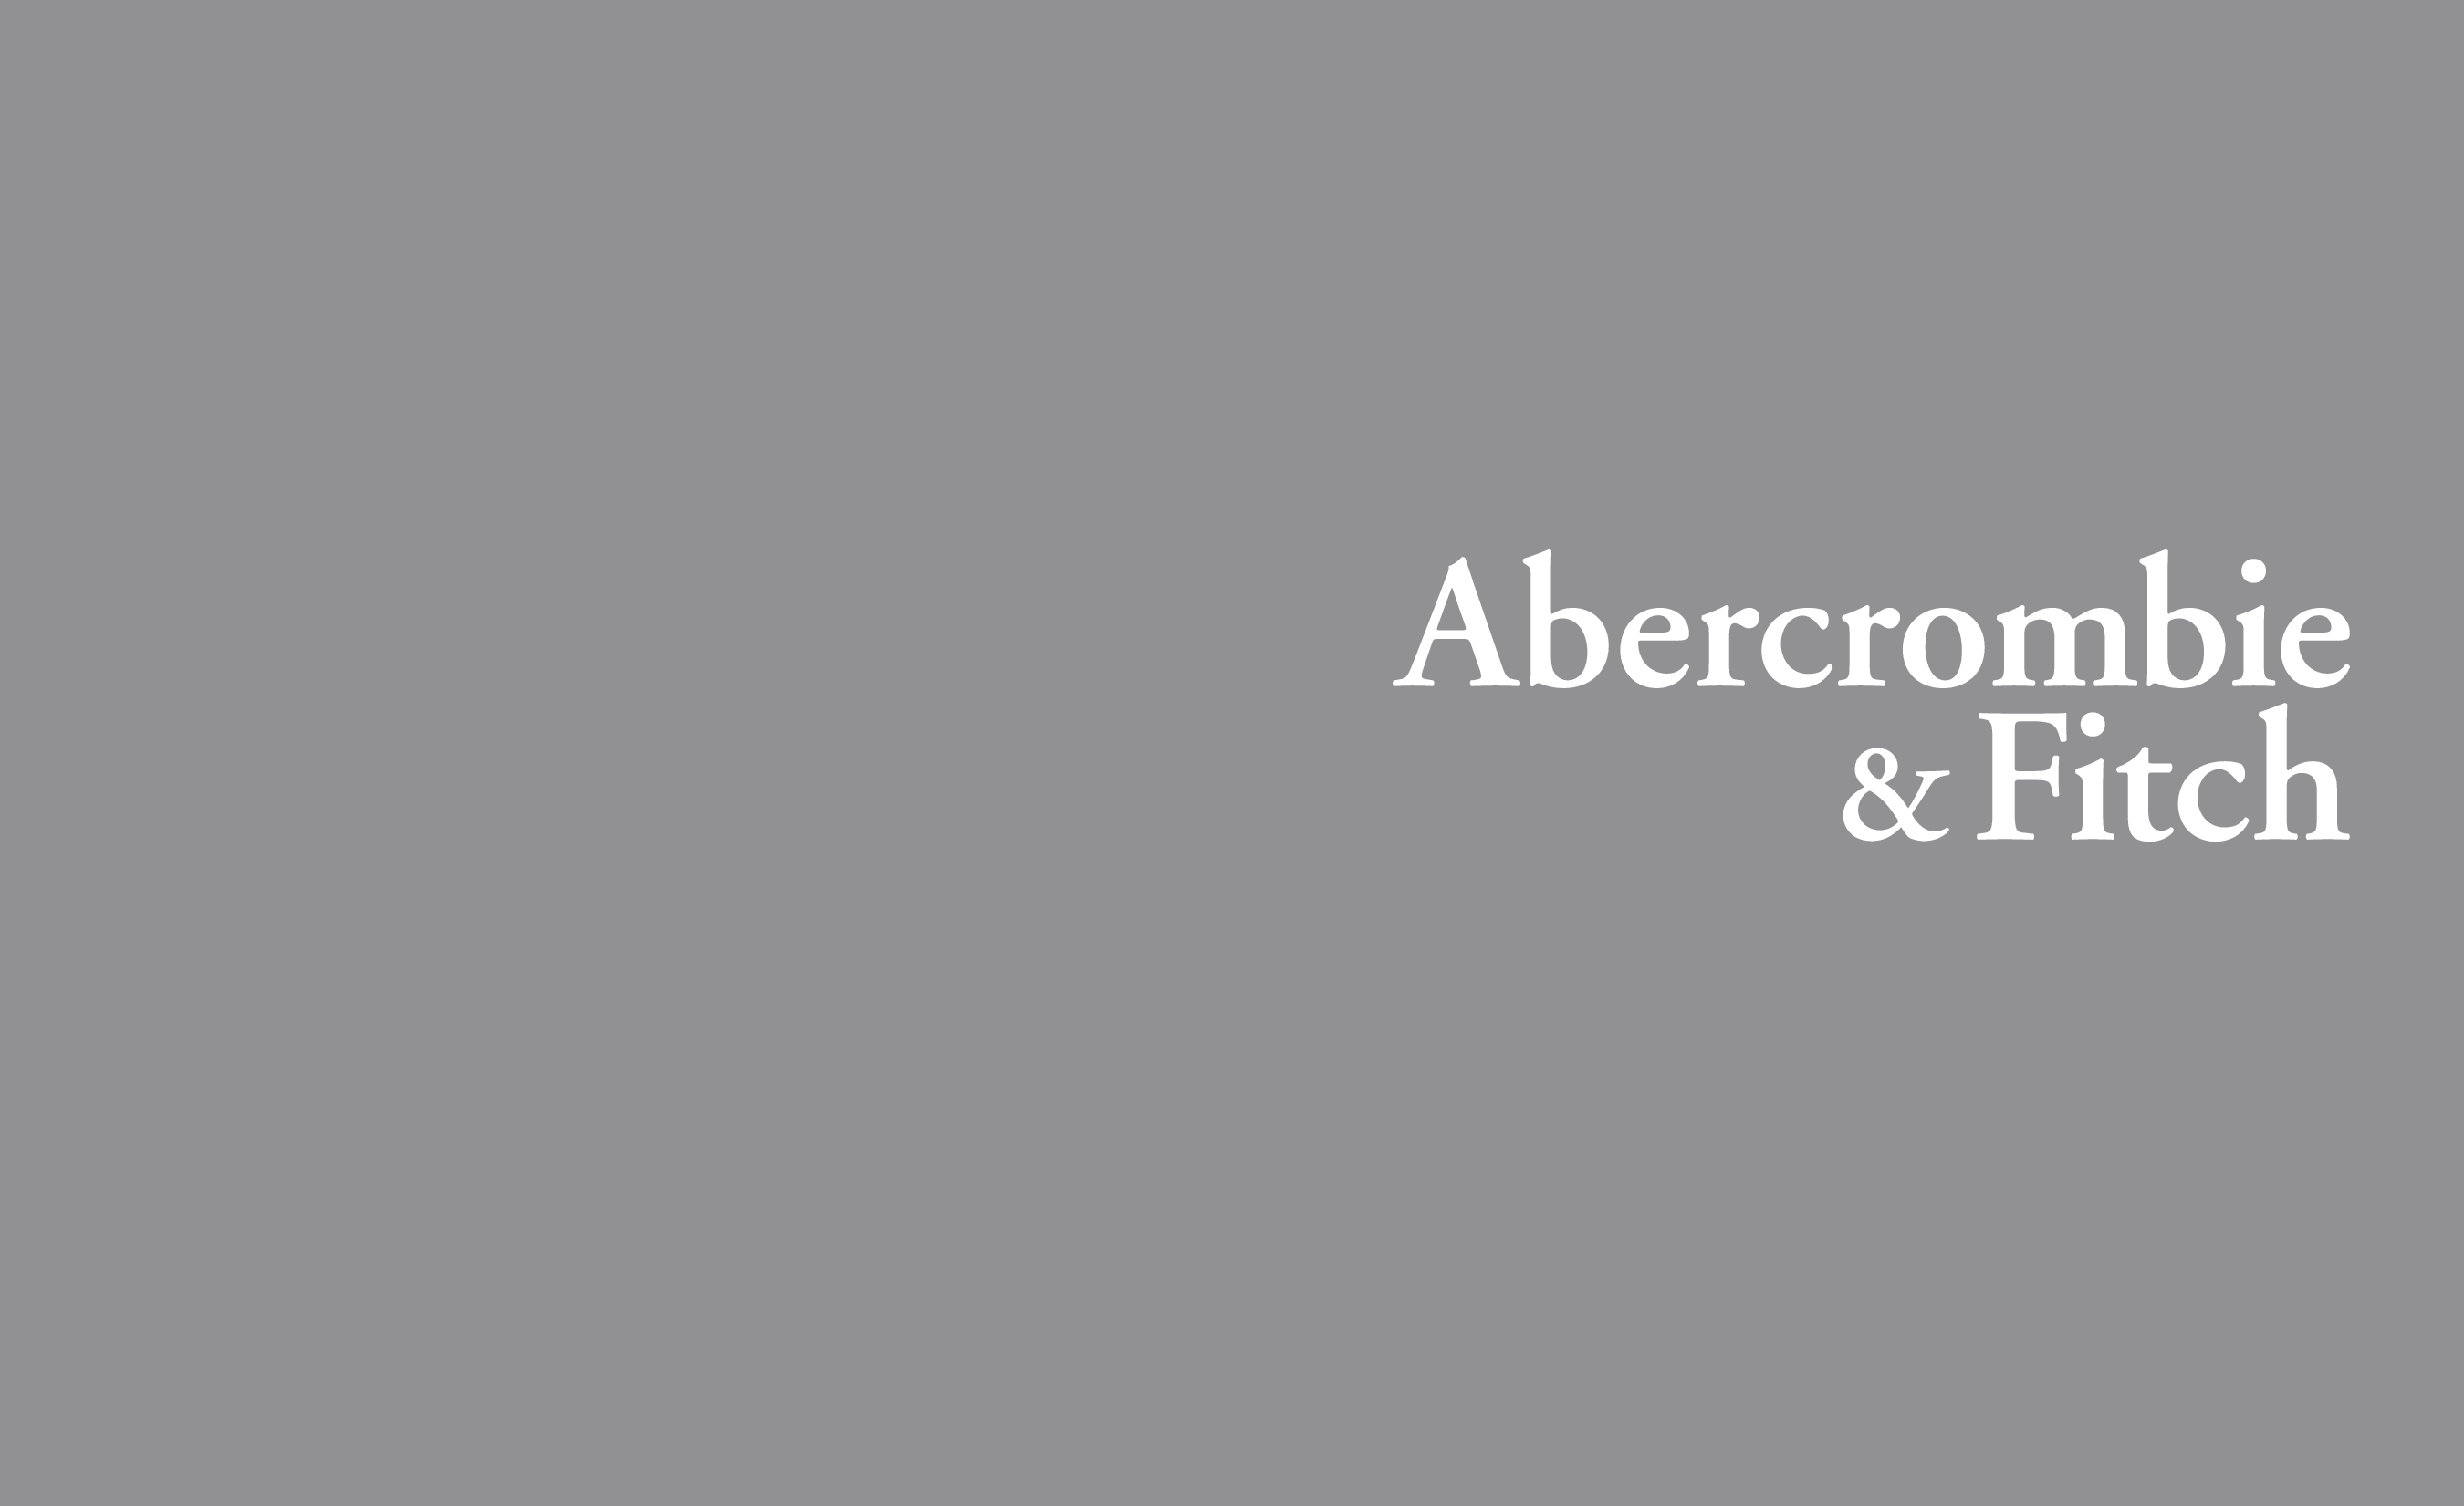 Abercrombie wallpapers wallpaper cave - Abercrombie and fitch logo wallpaper ...